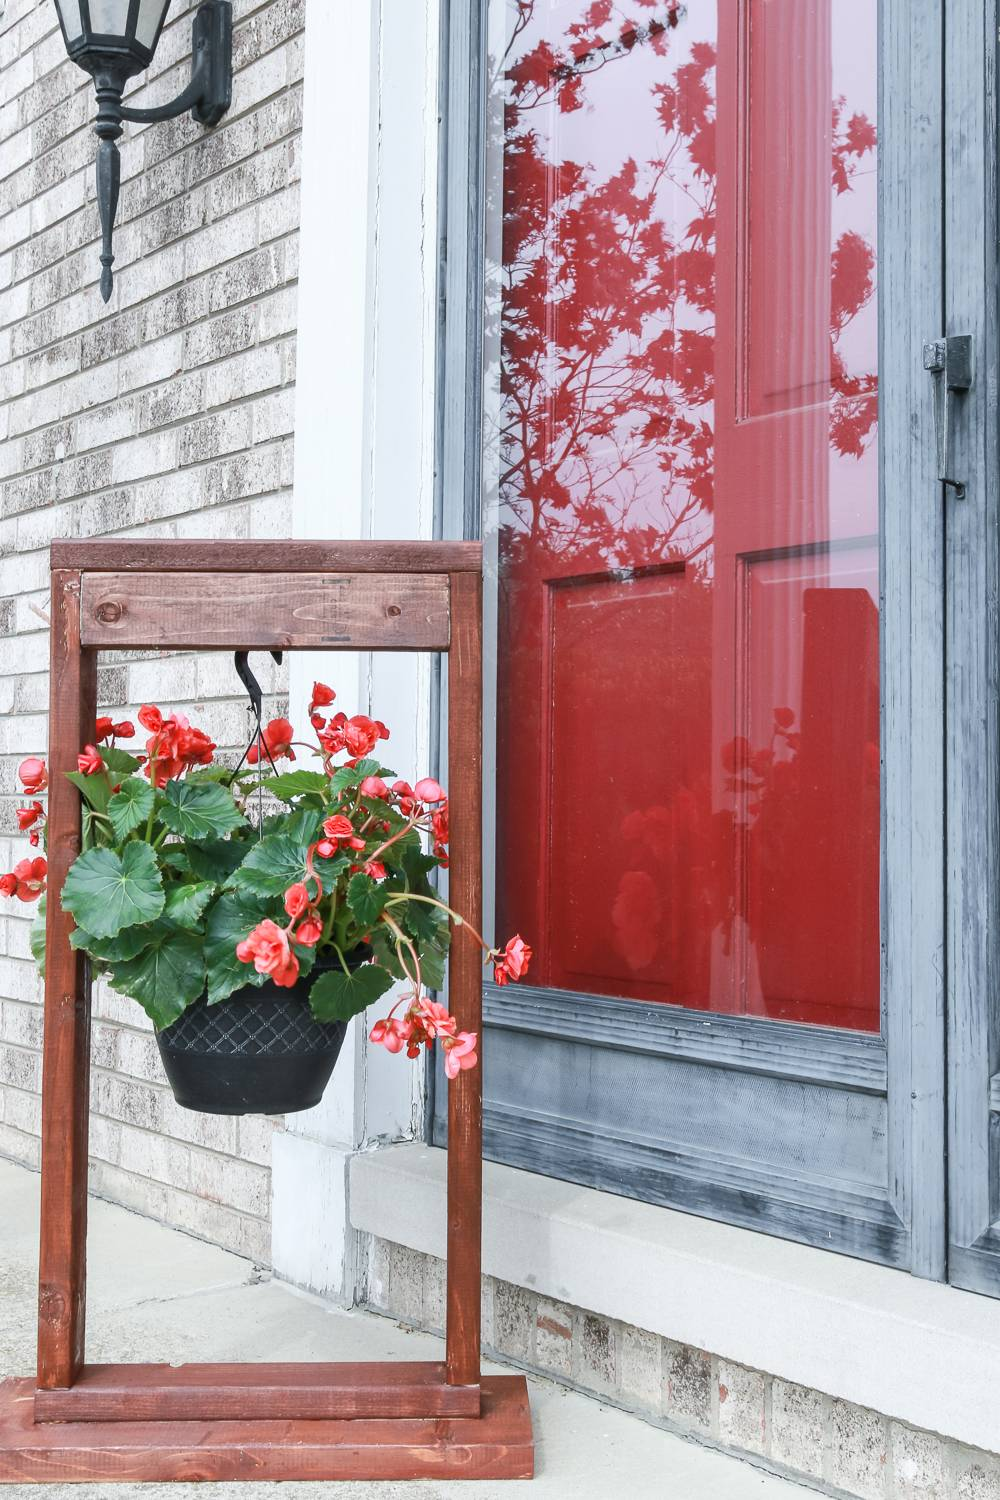 Red flowers hanging on a wood stand